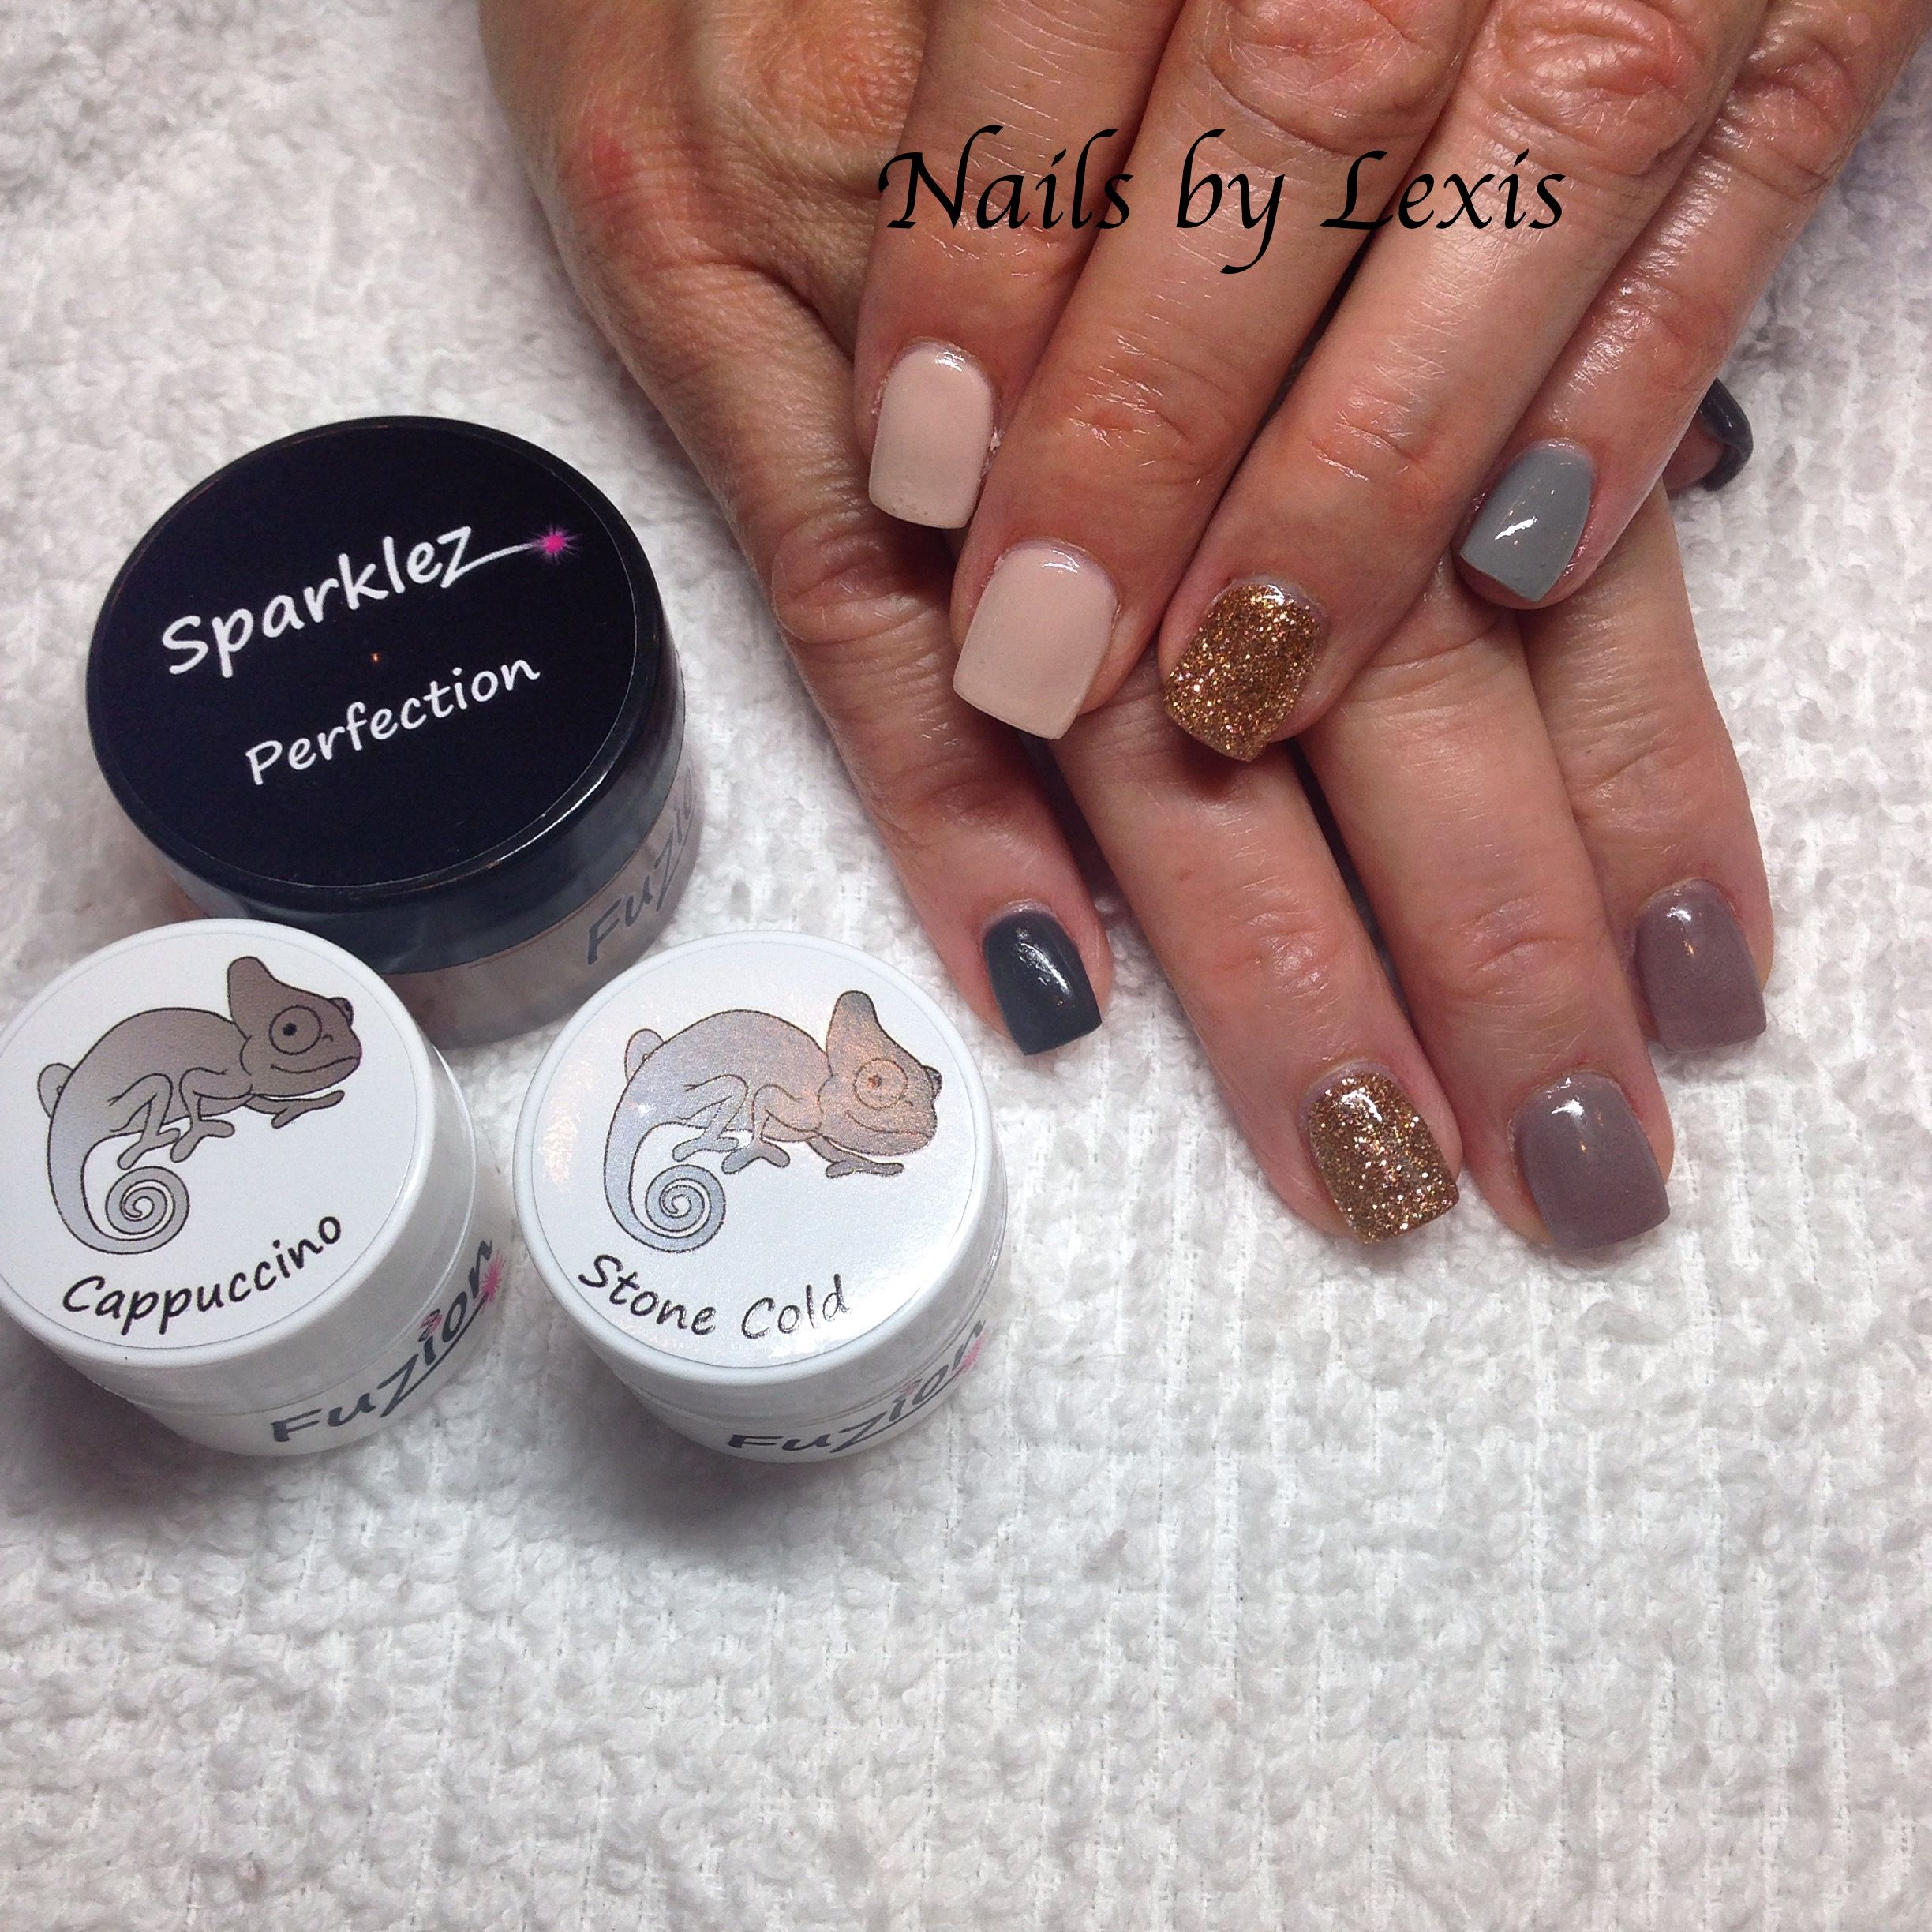 Fuzion Fall Gel Nails by Lexis!!! -Perfection -StoneCold -Cappucino ...